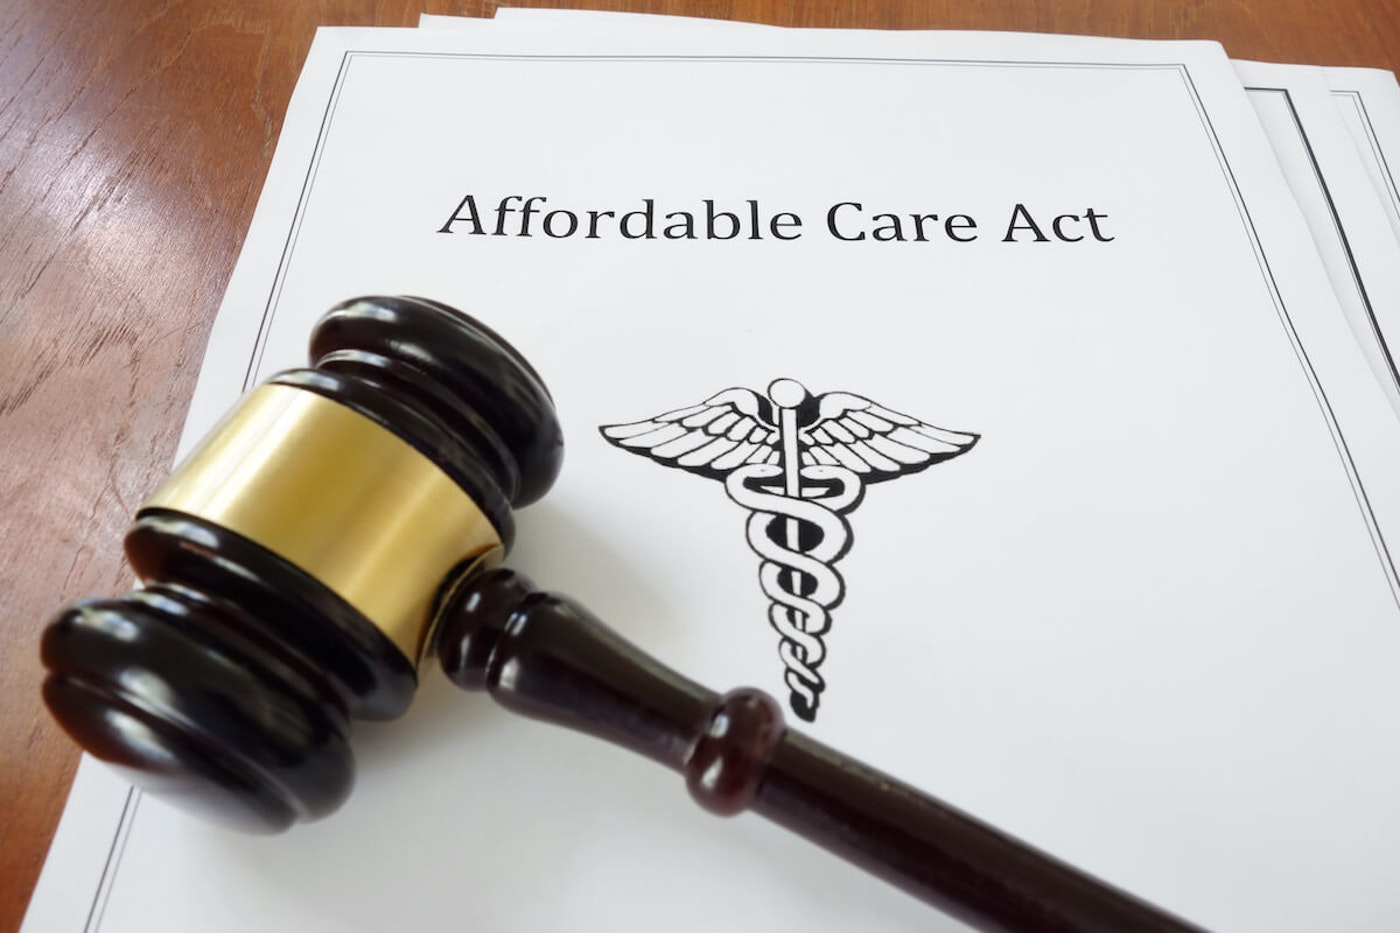 Oral arguments start Tuesday before the US Supreme Court for a case backed by outgoing President Donald Trump that could overturn the Affordable Care Act. (Shutterstock image)